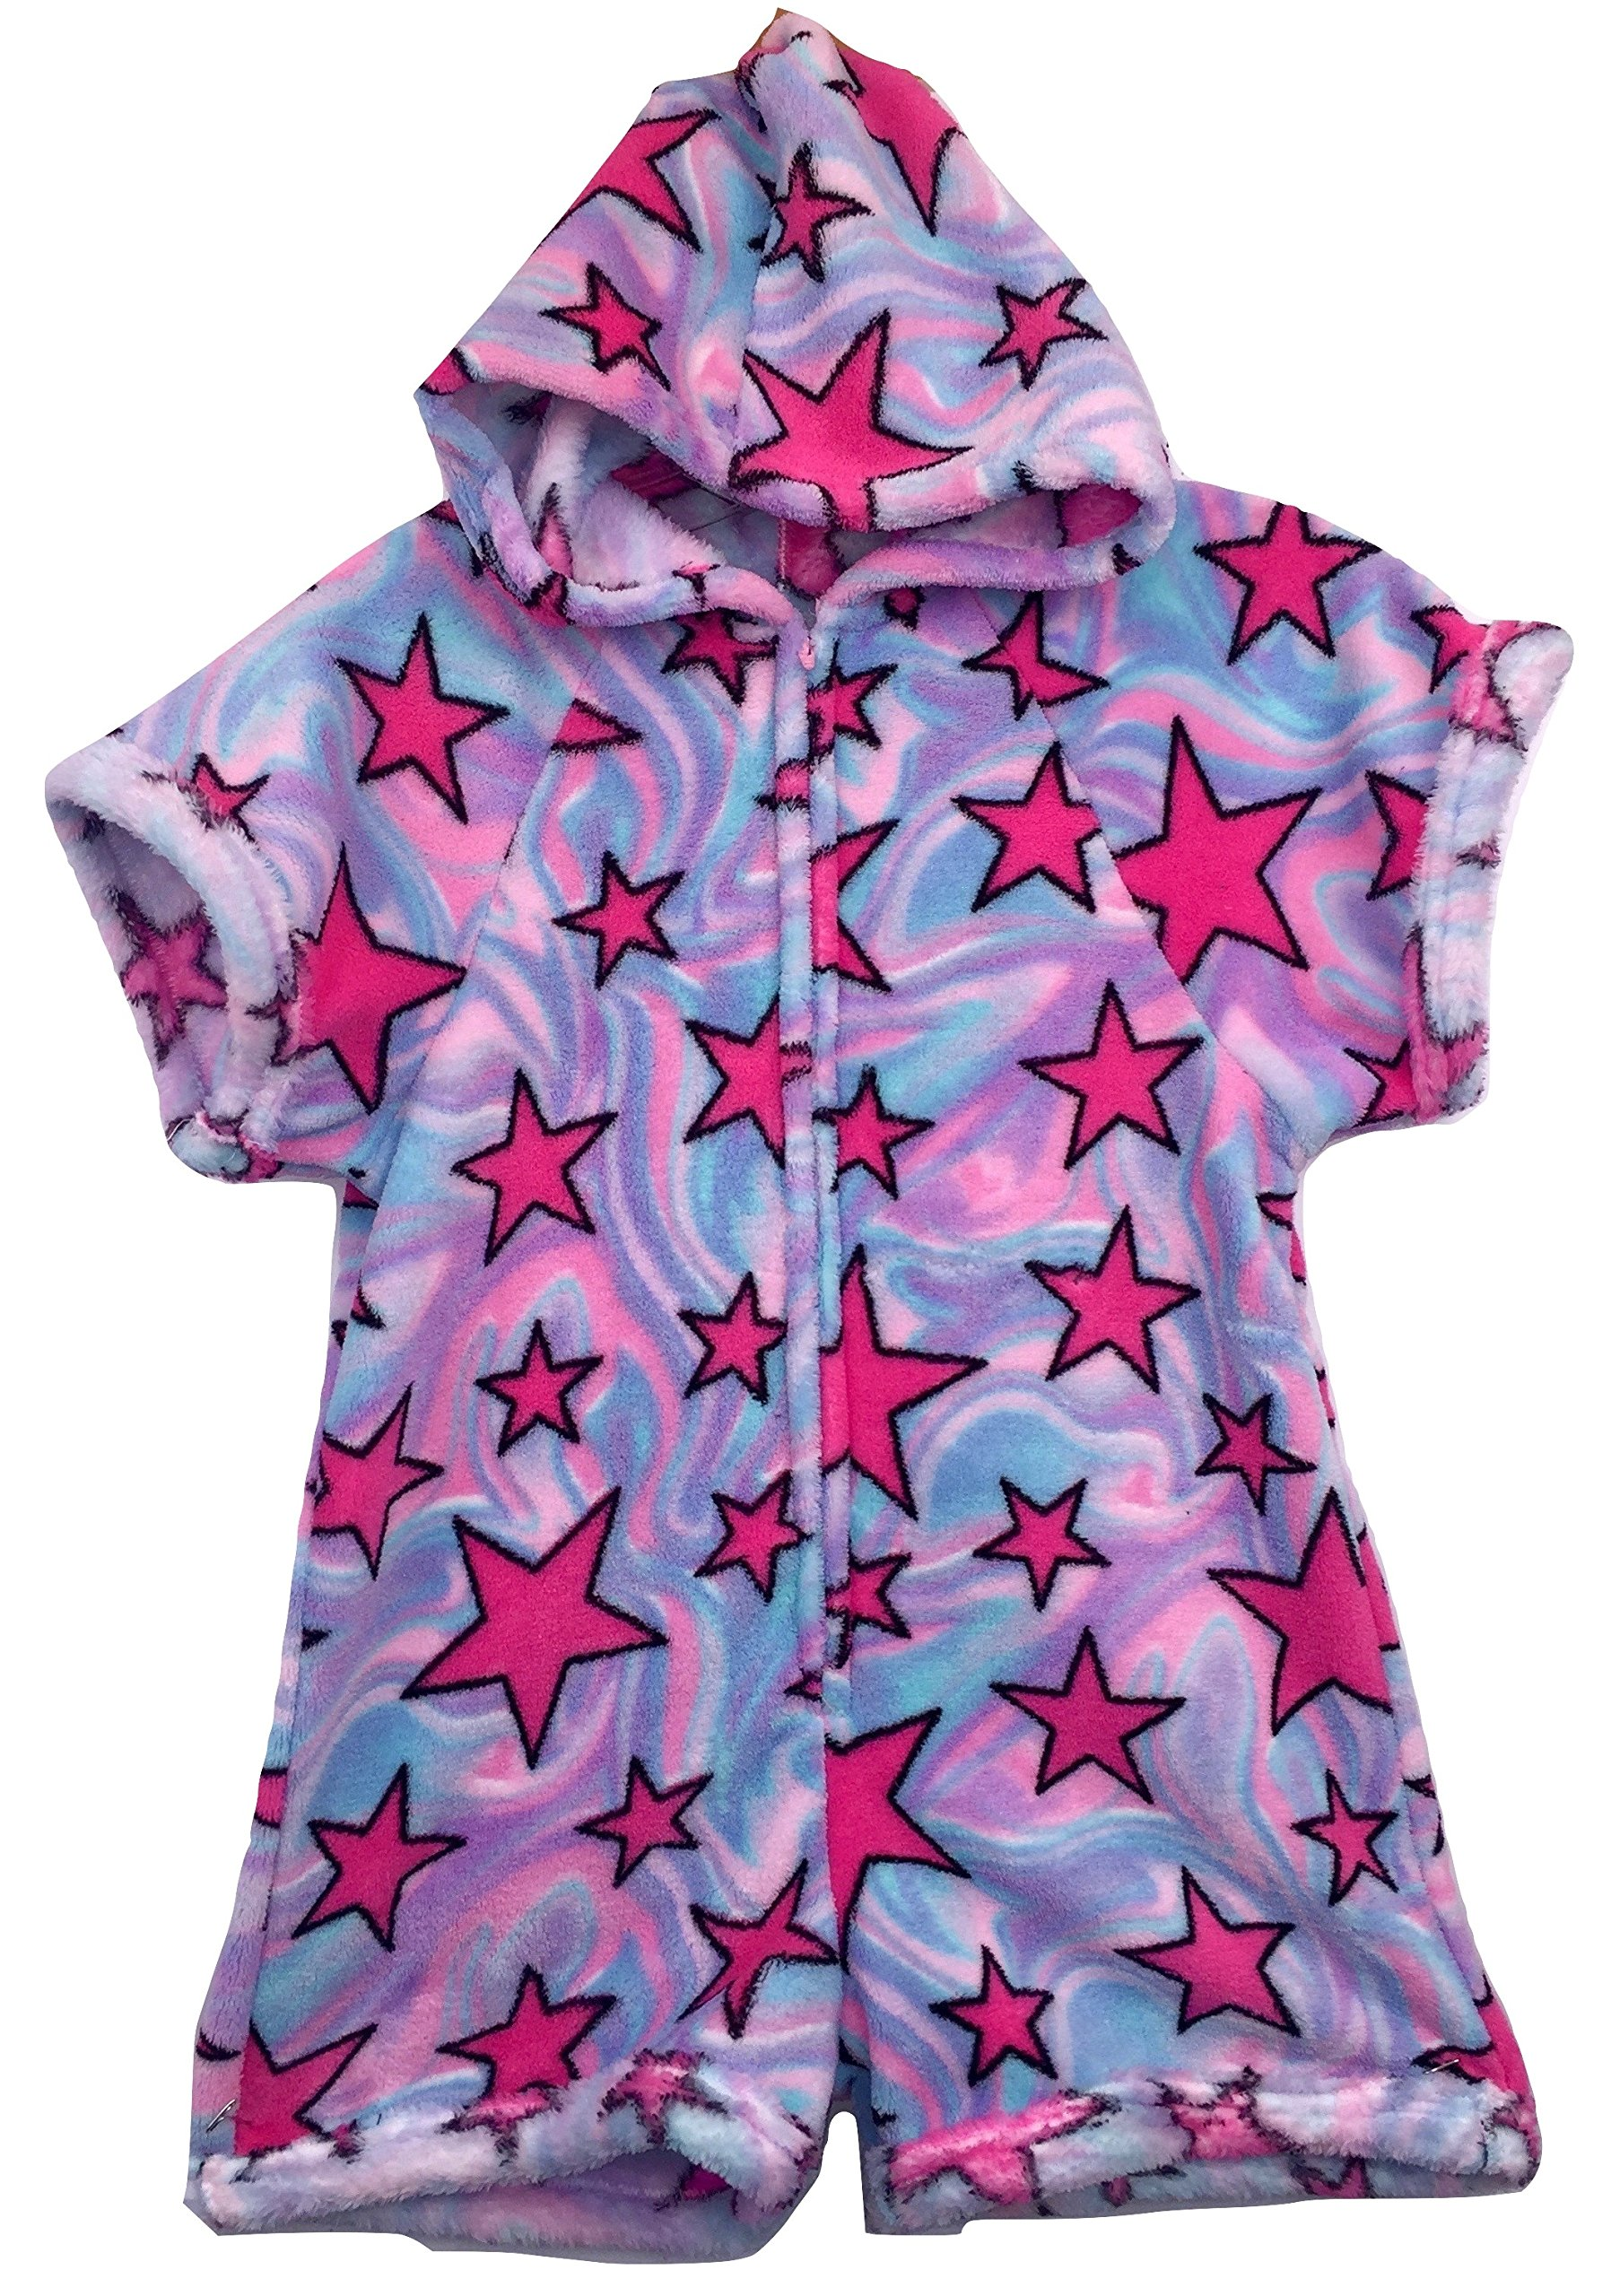 Made with Love and Kisses Fuzzy Plush Romper with Hood - Multi Swirly Stars - 10/12